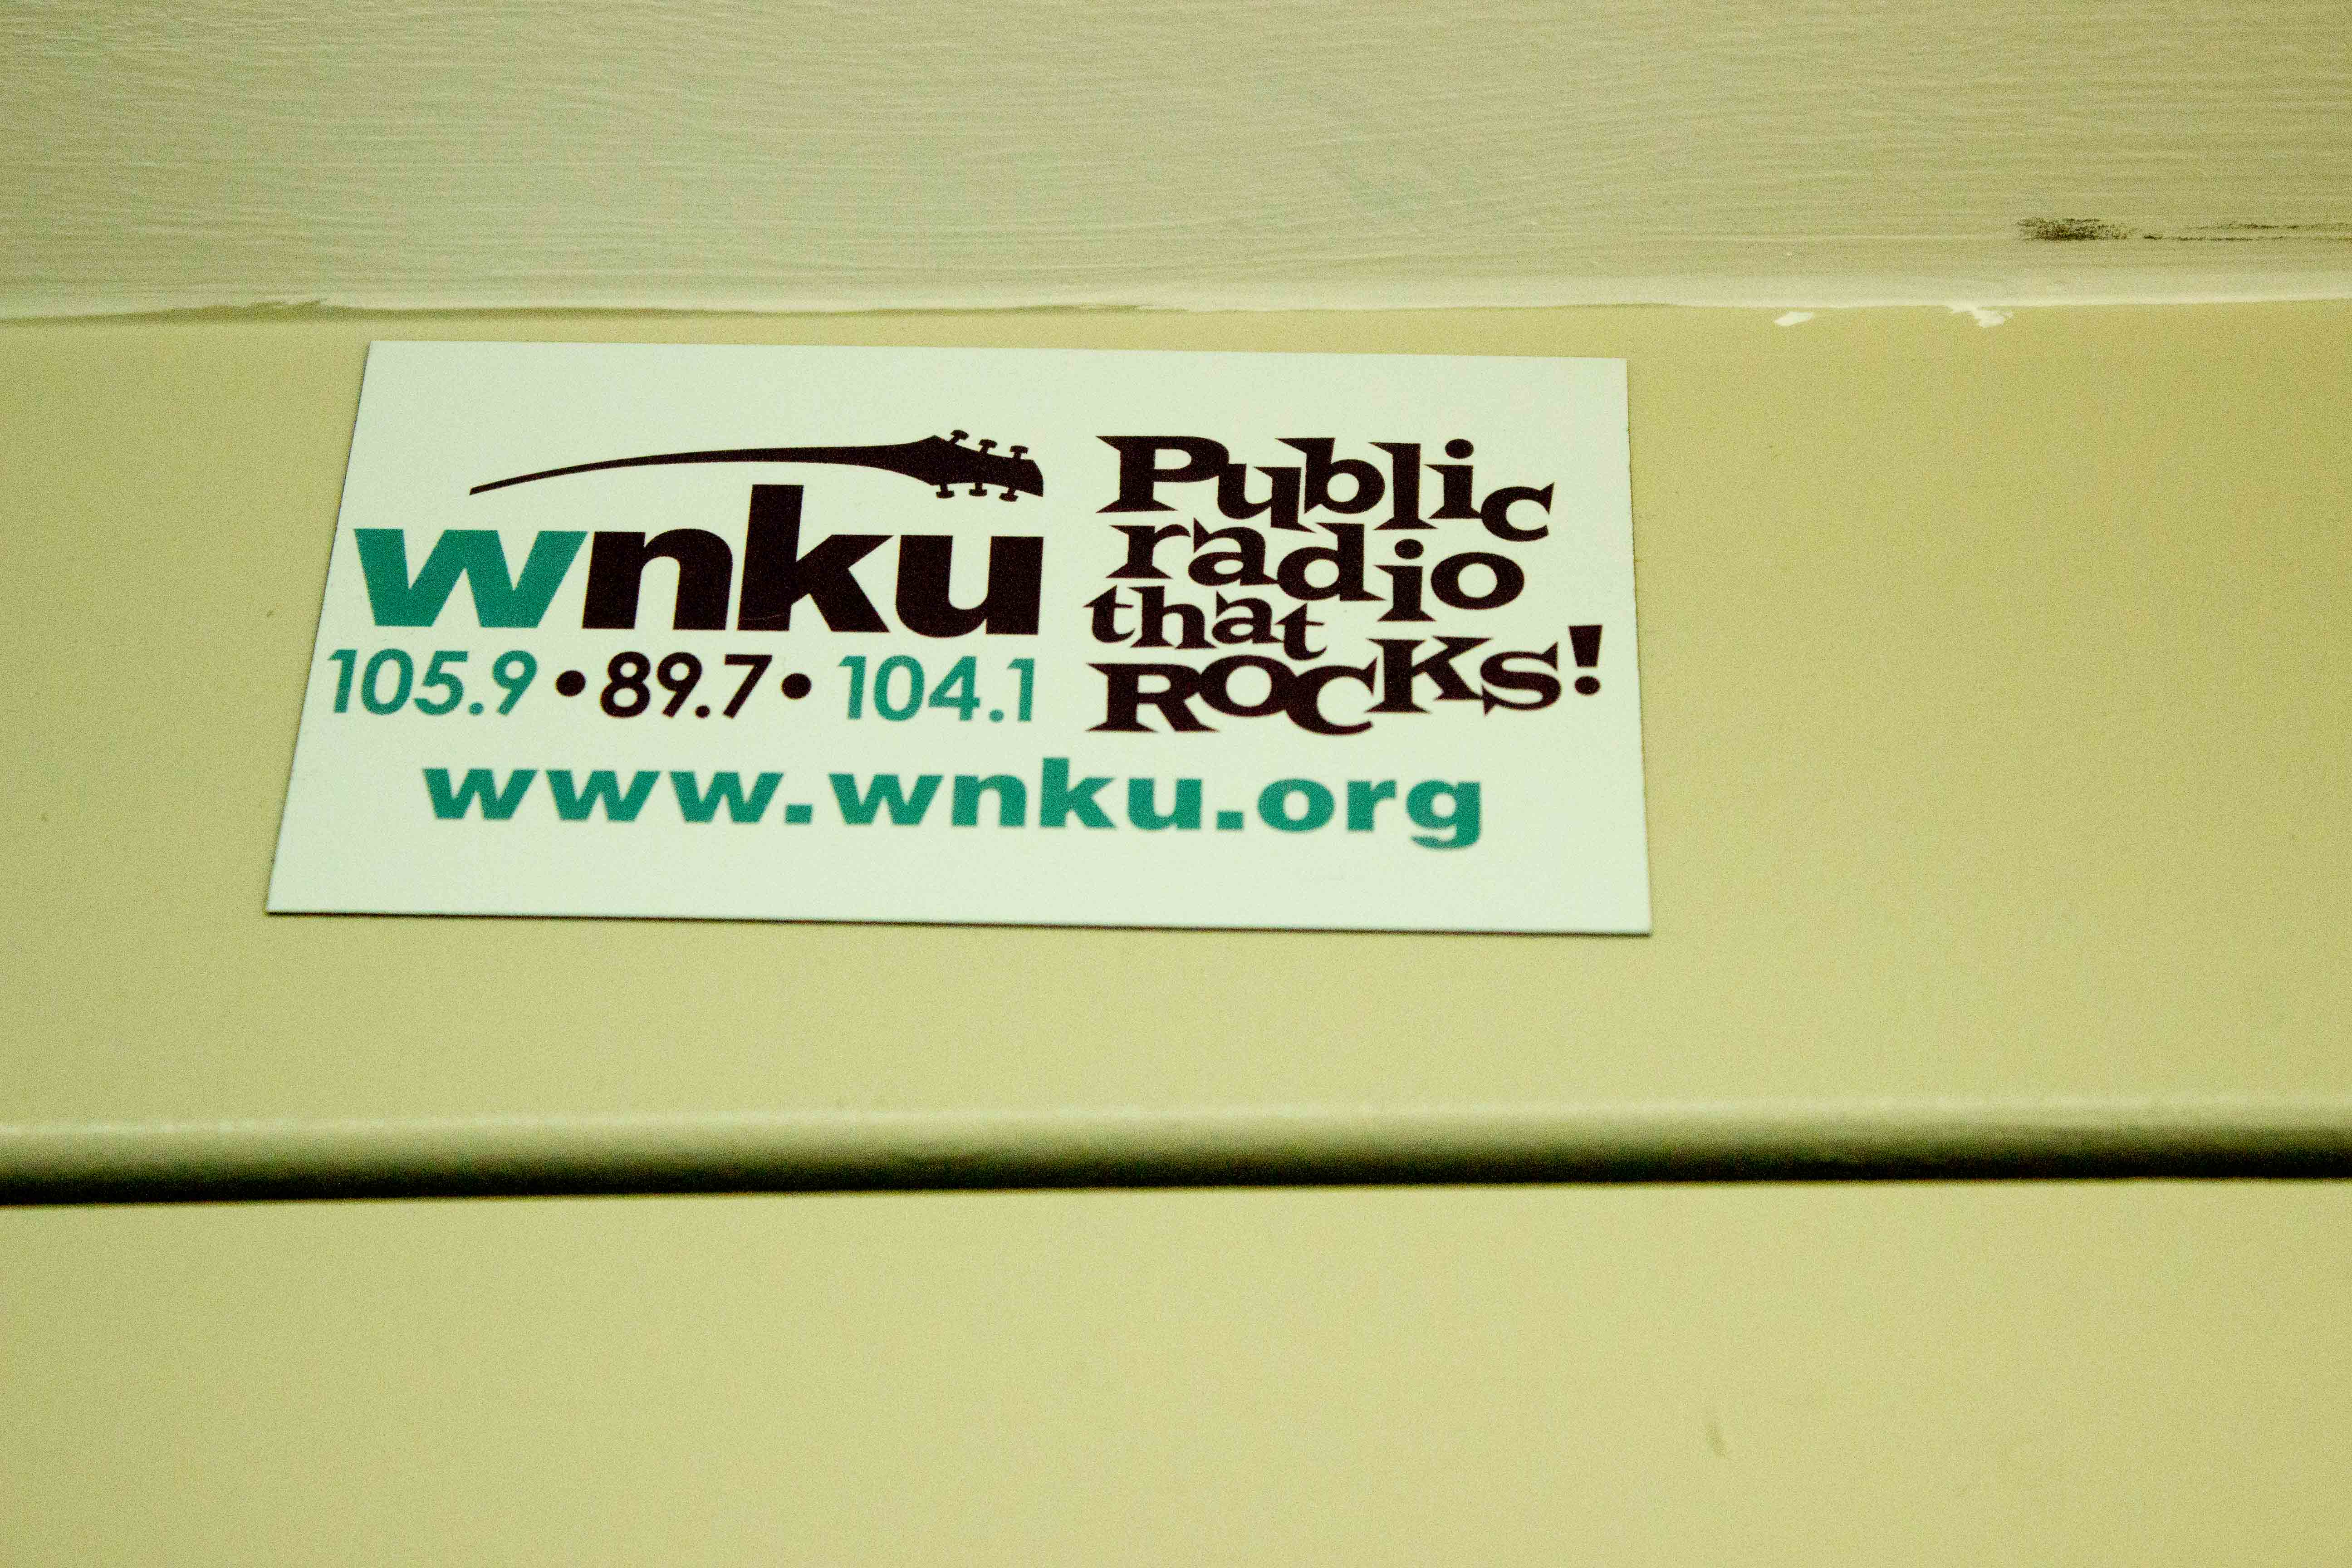 WVXU-HD2 will play the AAA (adult album alternative) music format in response to the sale of WNKU.